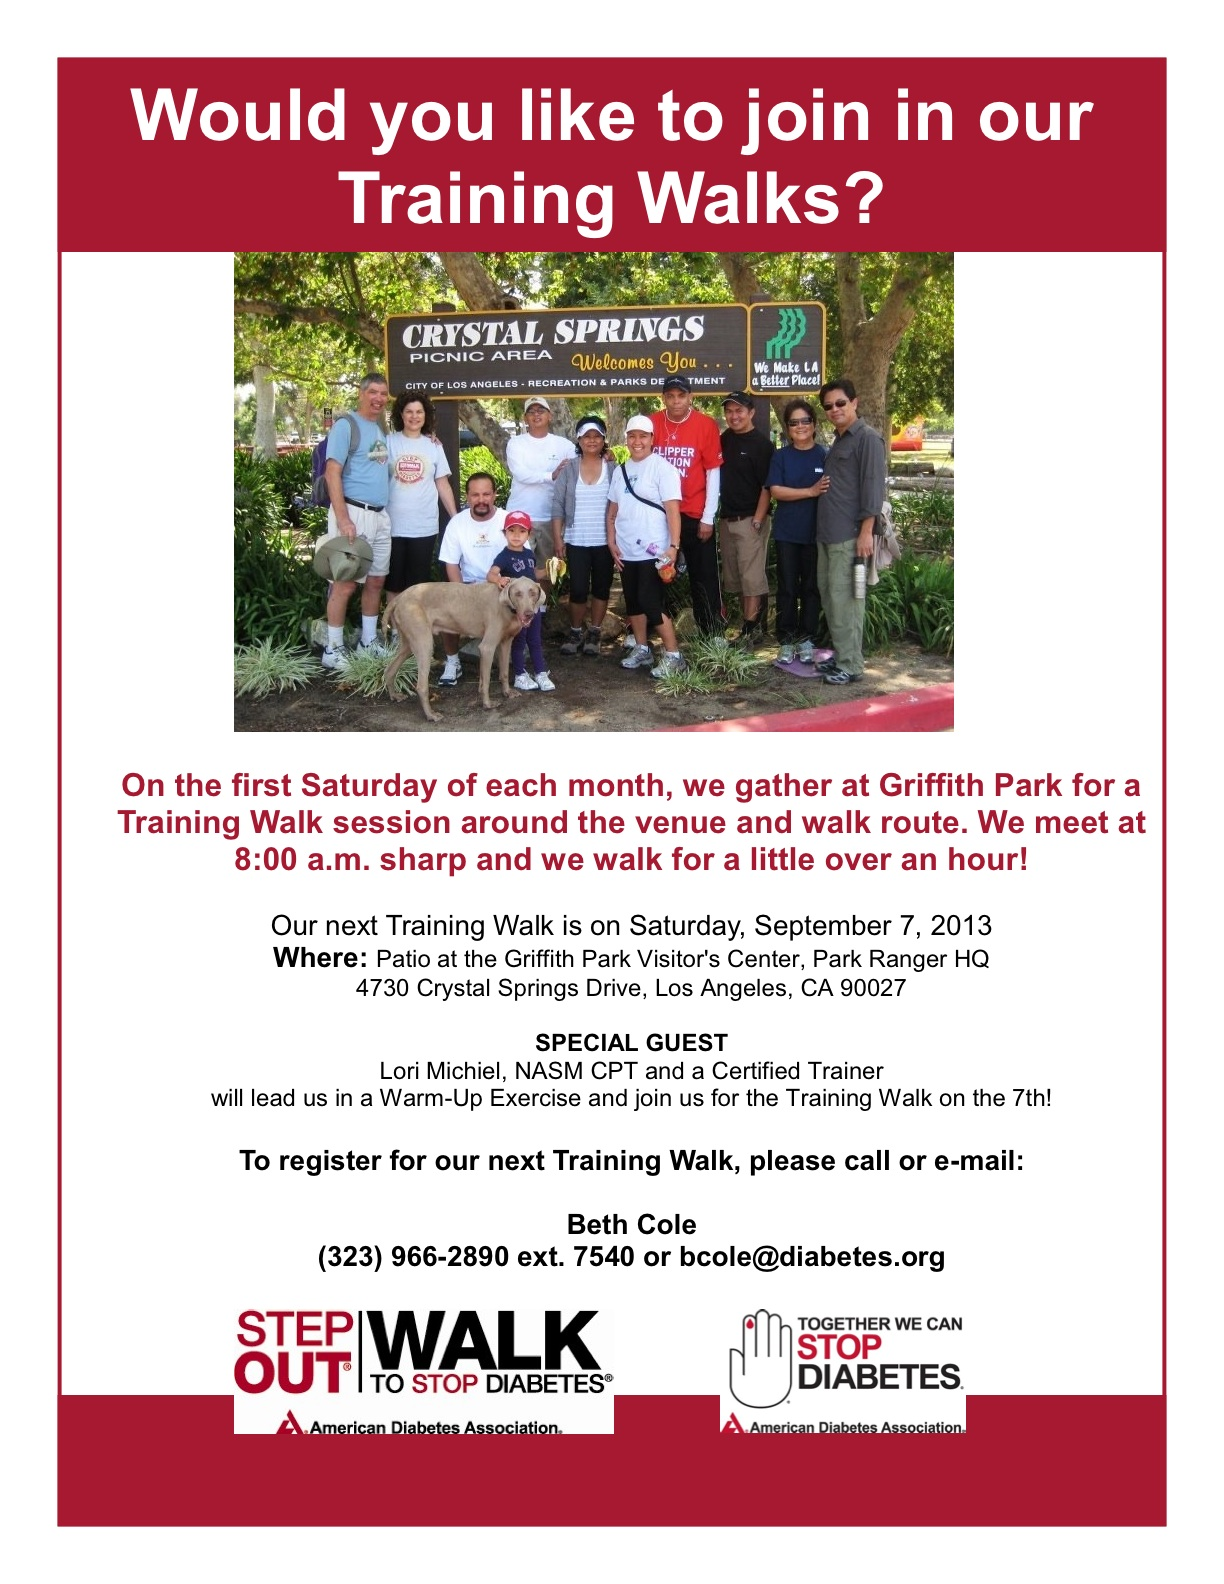 Lori Michiel Invited to Lead Warm-Up for an American Diabetes Association Training Walk